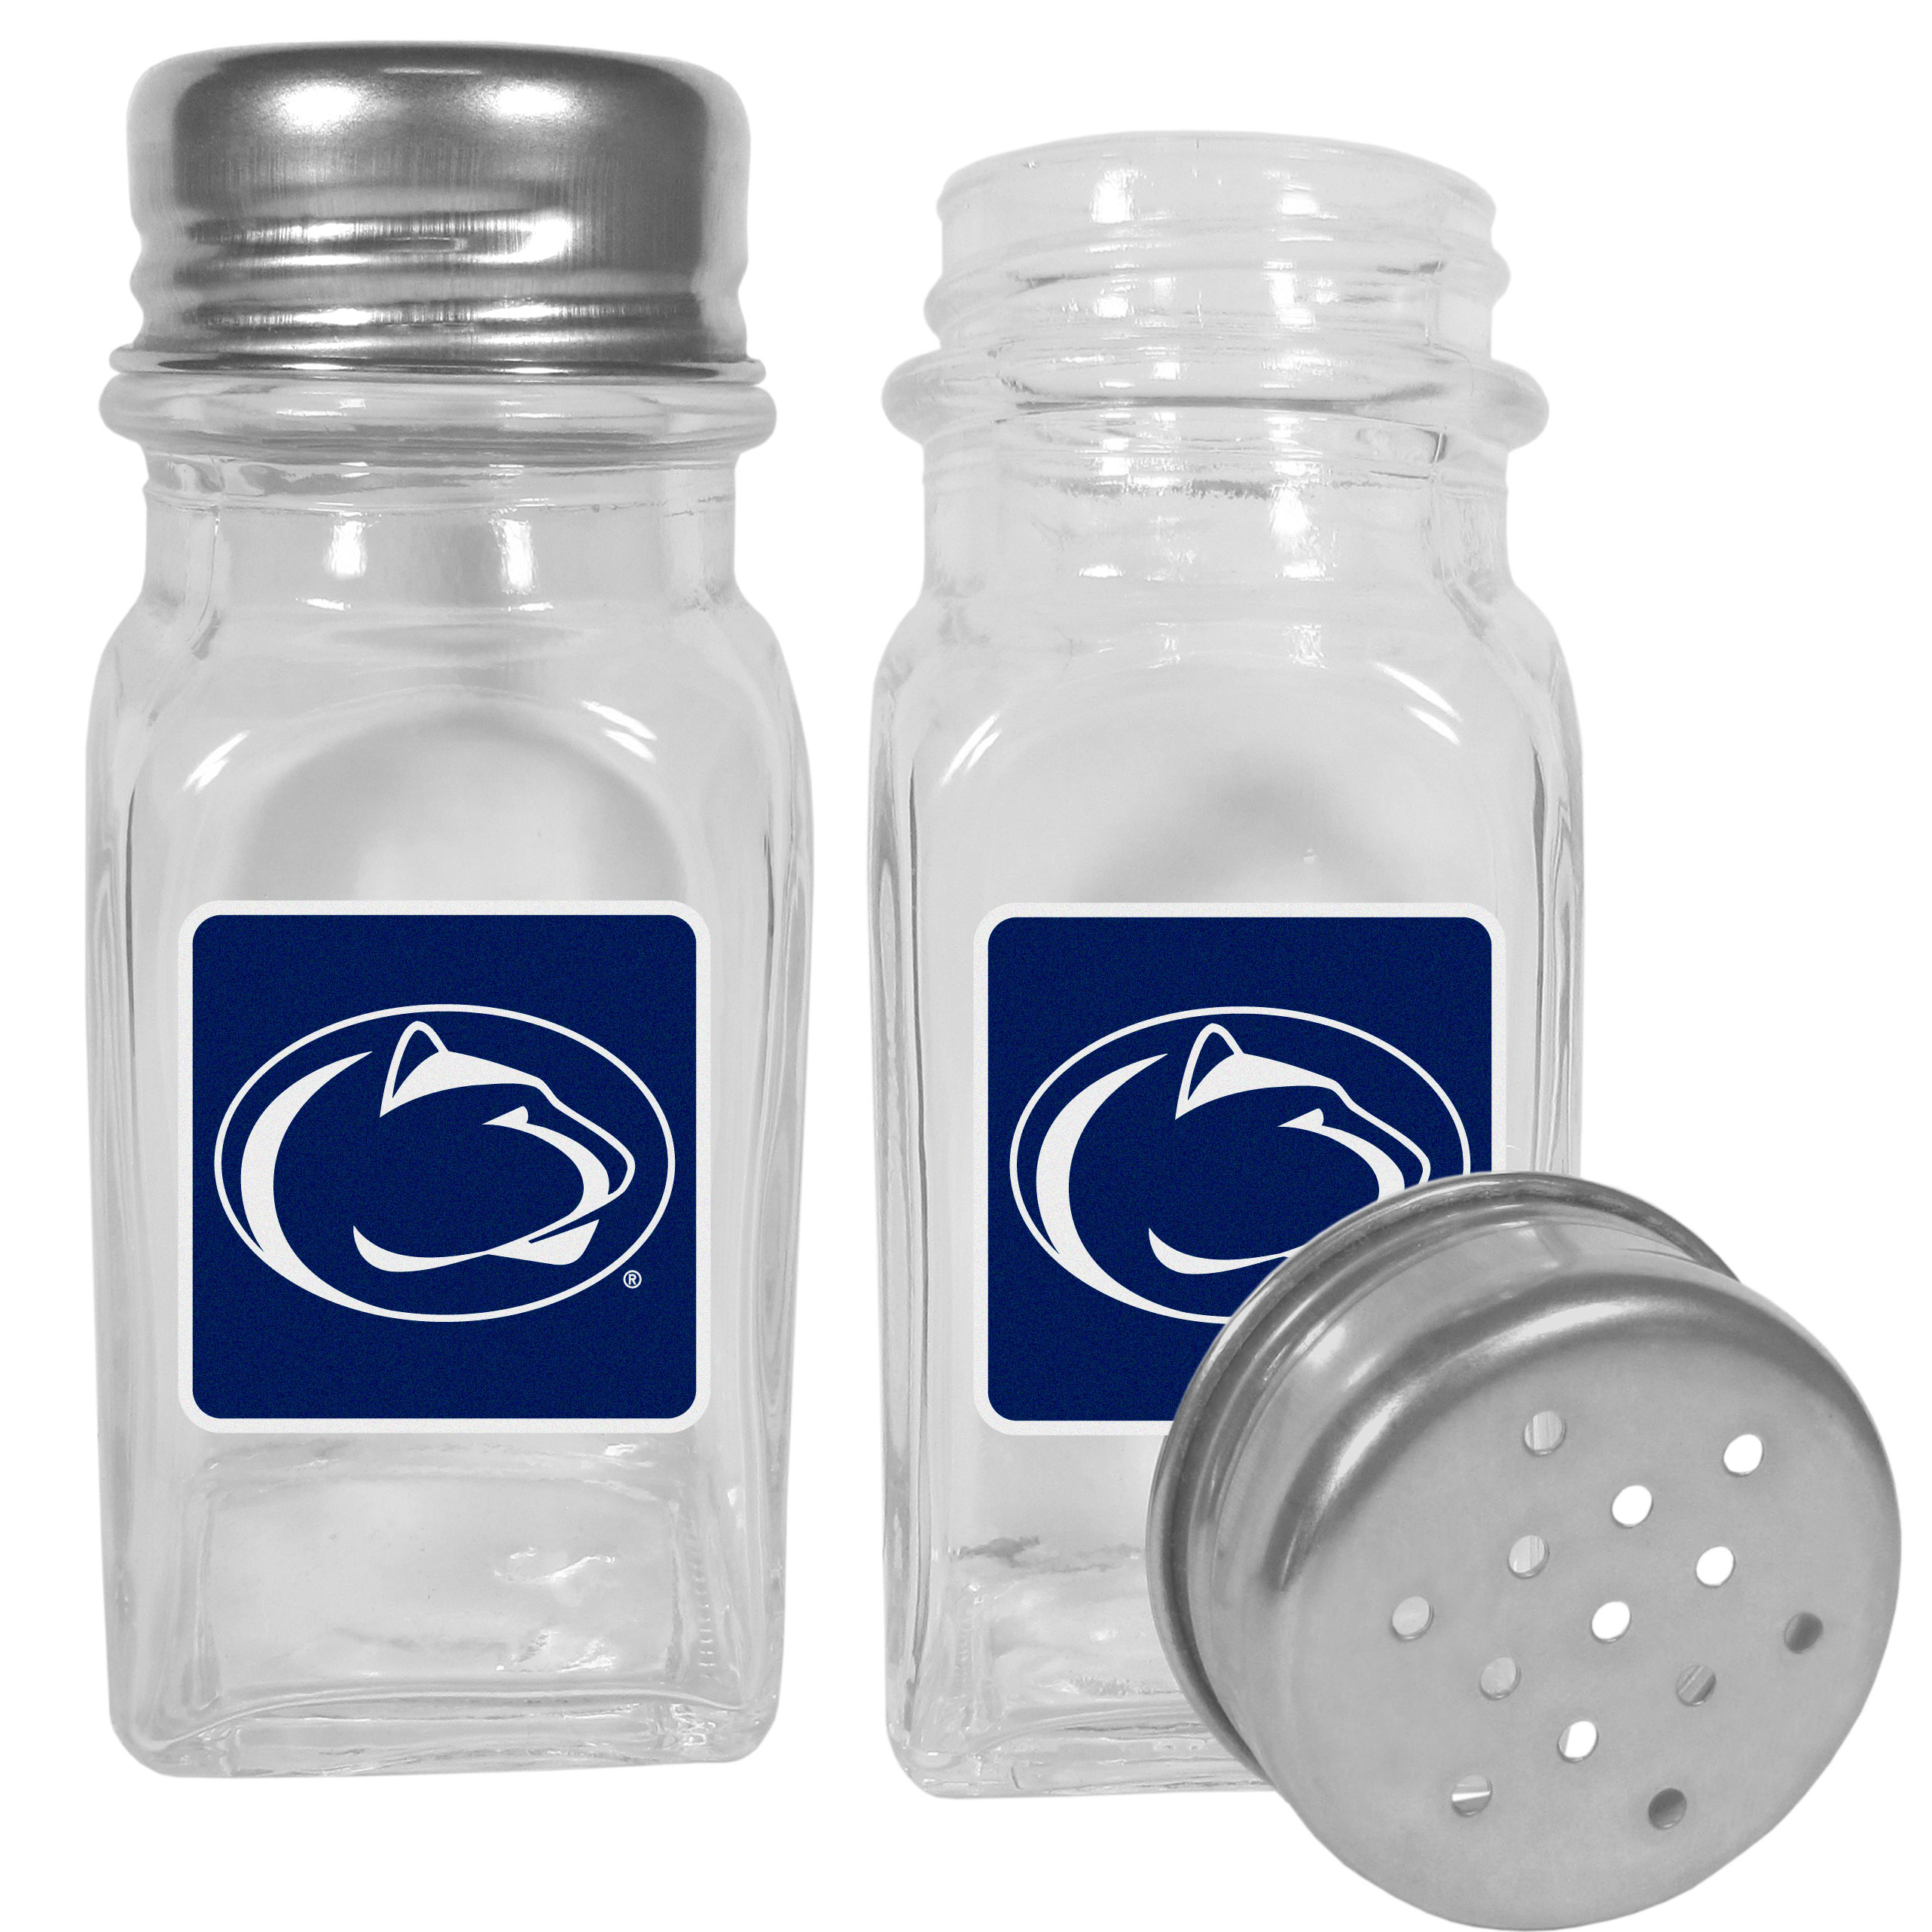 Penn St. Nittany Lions Graphics Salt & Pepper Shaker - No tailgate party is complete without your Penn St. Nittany Lions salt & pepper shakers featuring bright team logos. The diner replica salt and pepper shakers are glass with screw top lids. These team shakers are a great grill accessory whether you are barbecuing on the patio, picnicing or having a game day party.